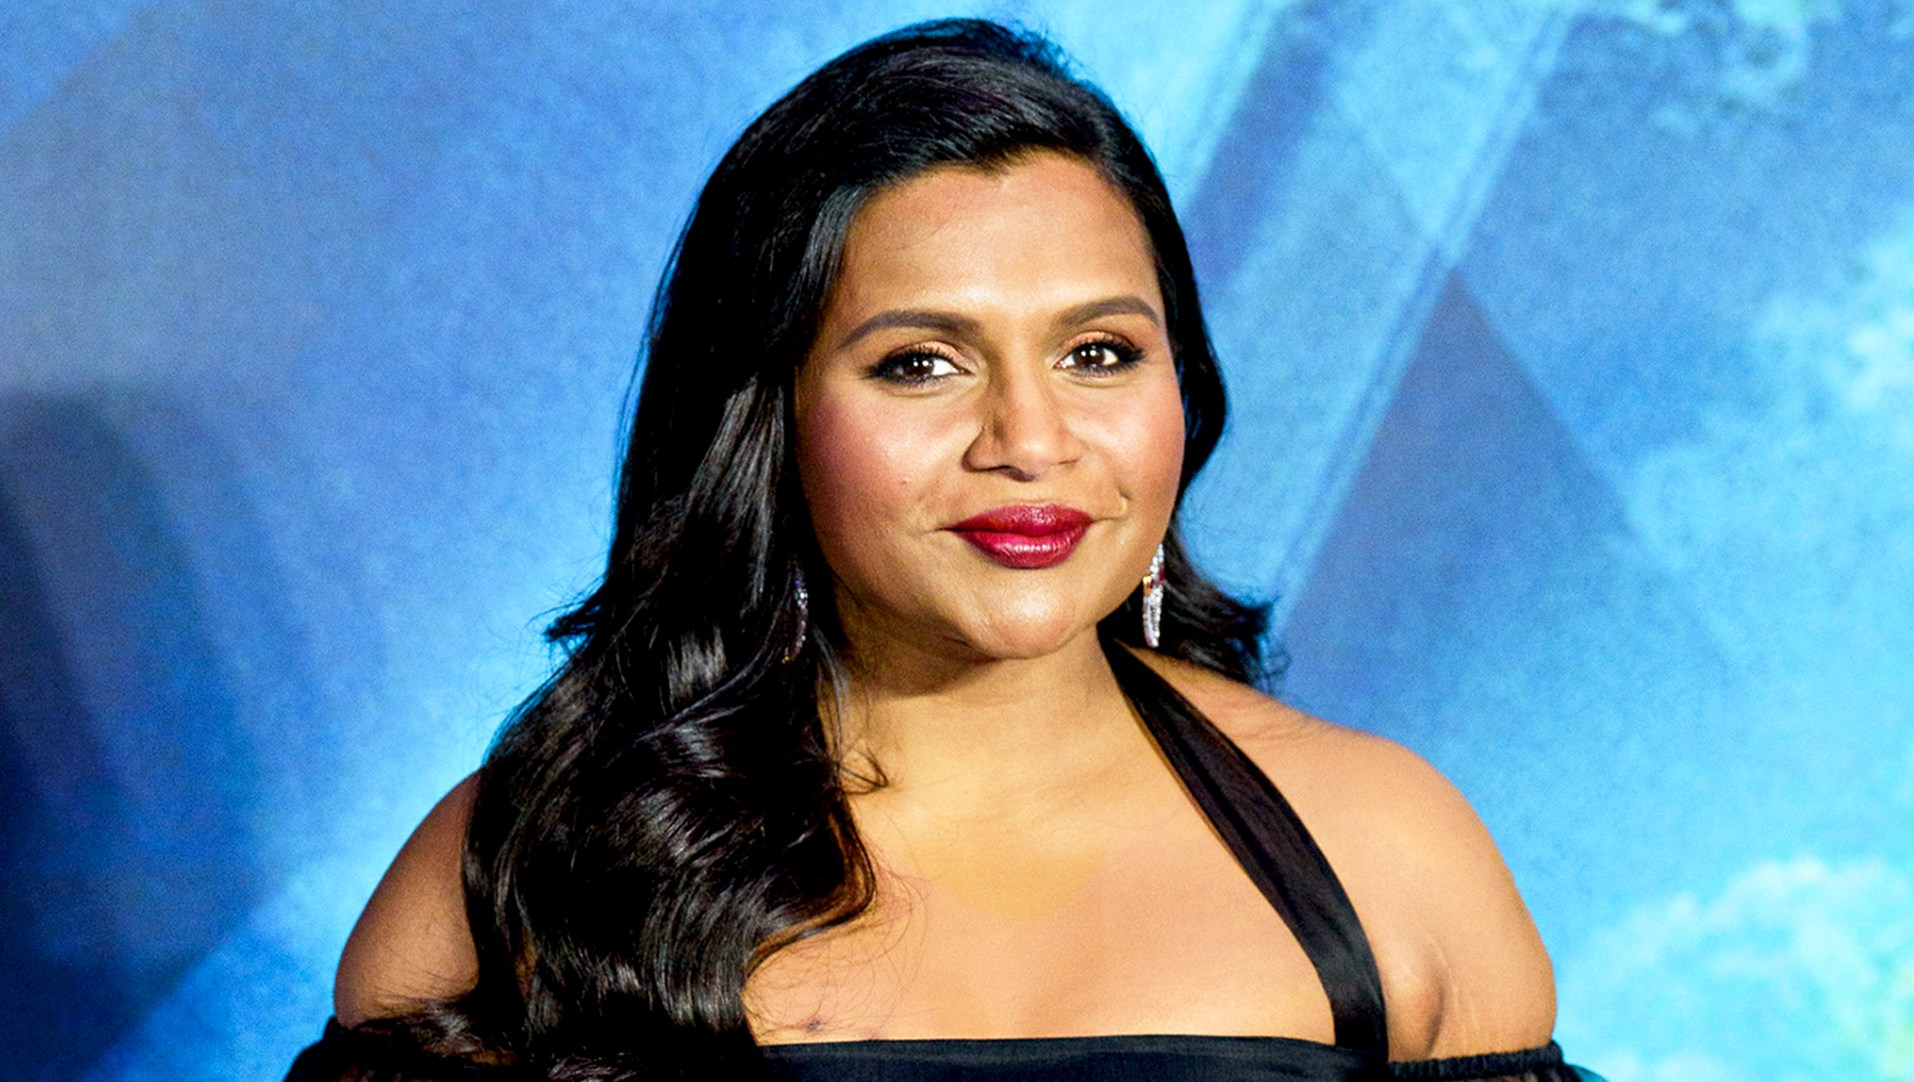 Mindy Kaling attends the European Premiere of 'A Wrinkle In Time' at BFI IMAX on March 13, 2018 in London, England.